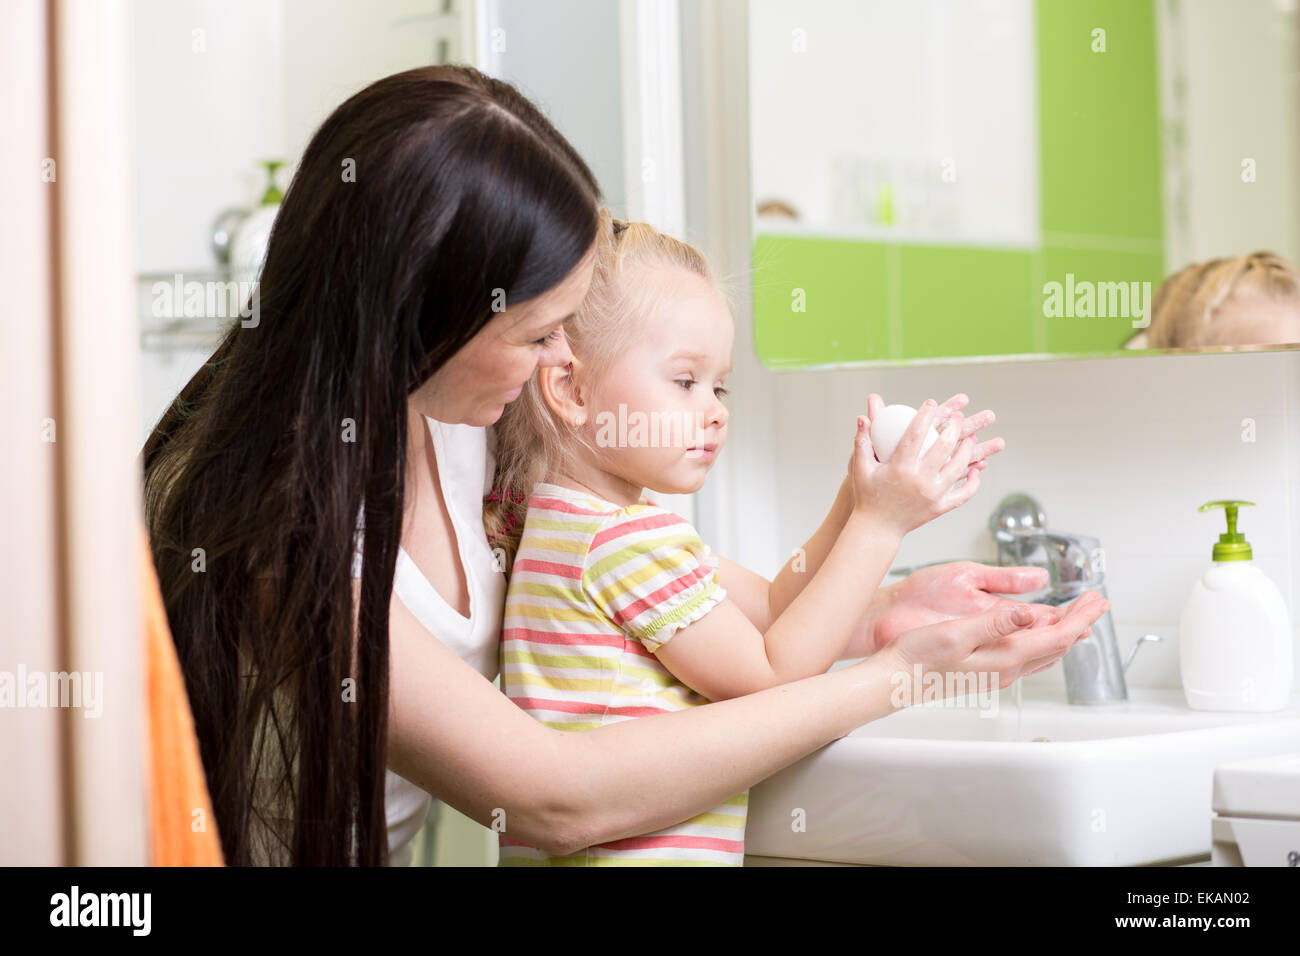 mother teaches kid washing hands in bathroom - Stock Image